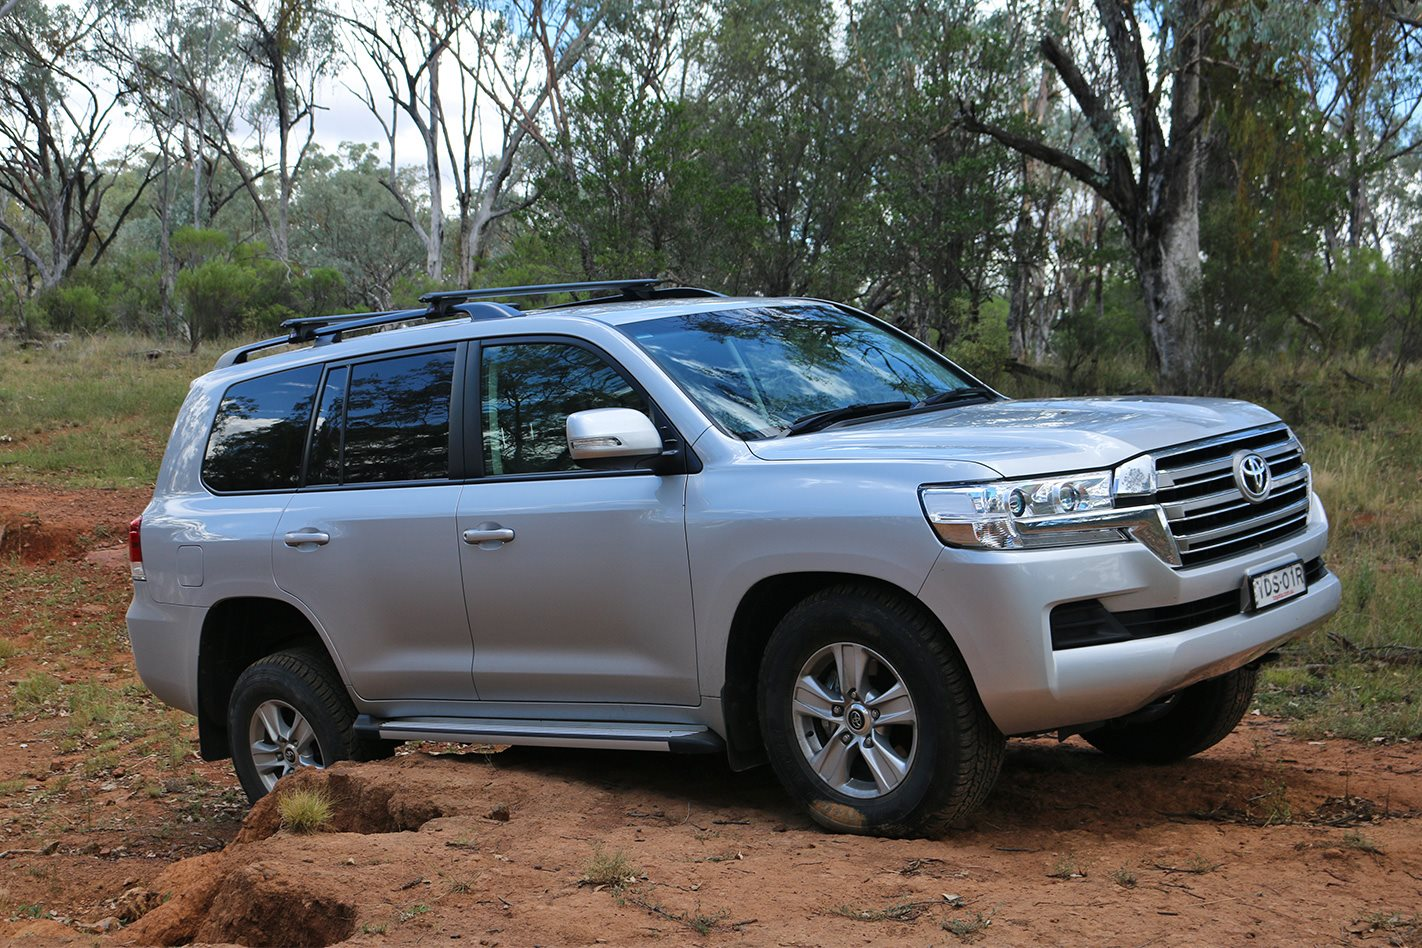 toyota land cruiser 200 series review 4x4 australia. Black Bedroom Furniture Sets. Home Design Ideas